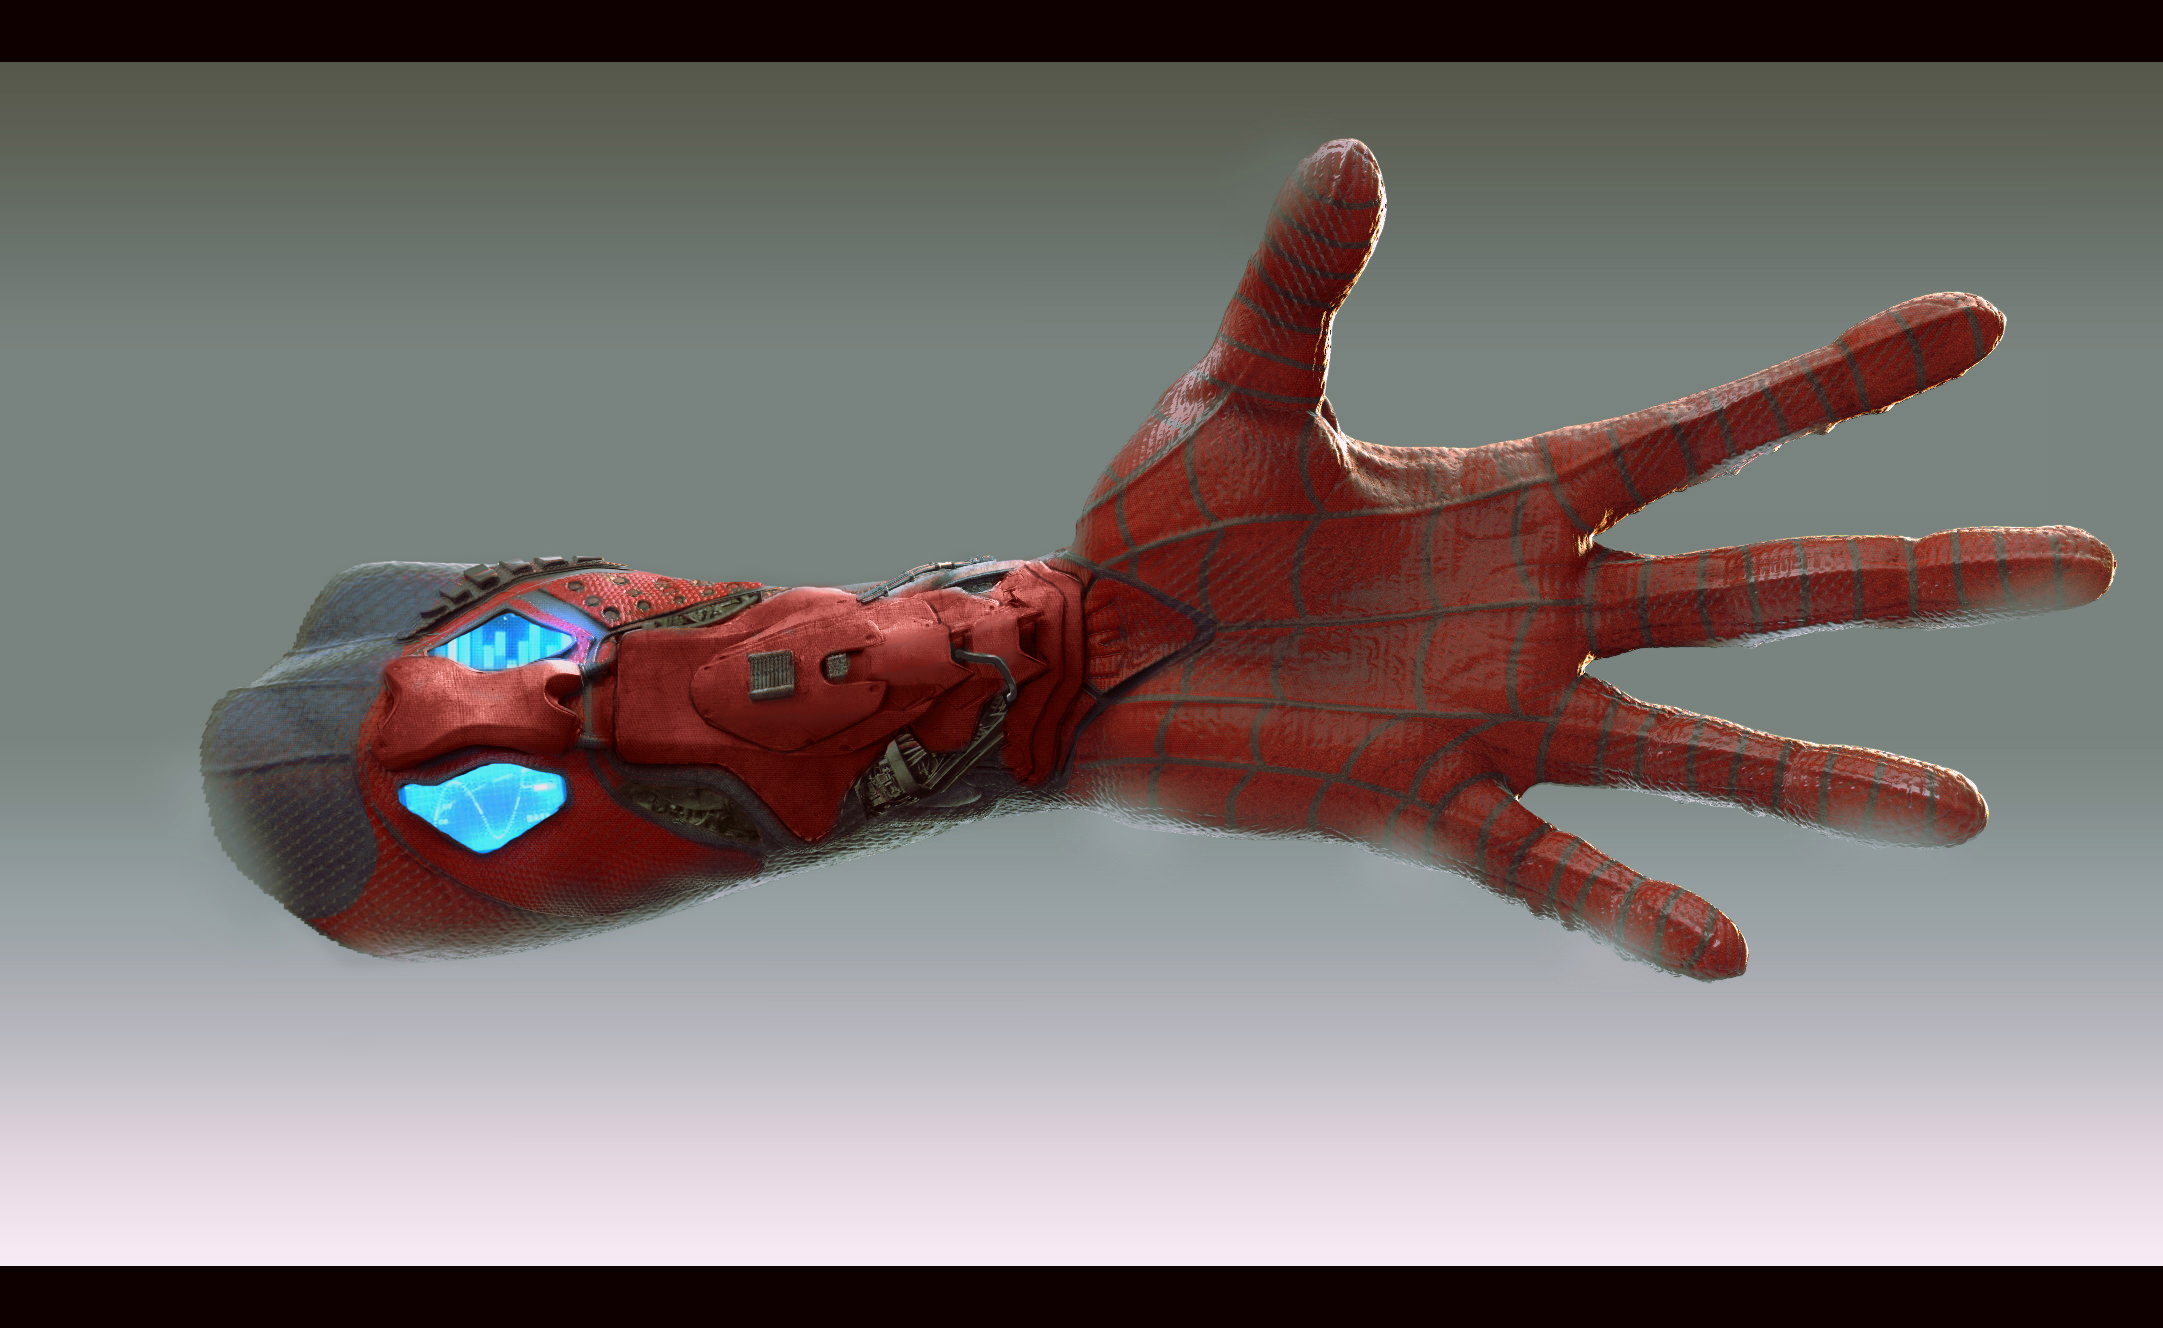 New 'The Amazing Spider-Man 2' concept art shows Spidey's ...